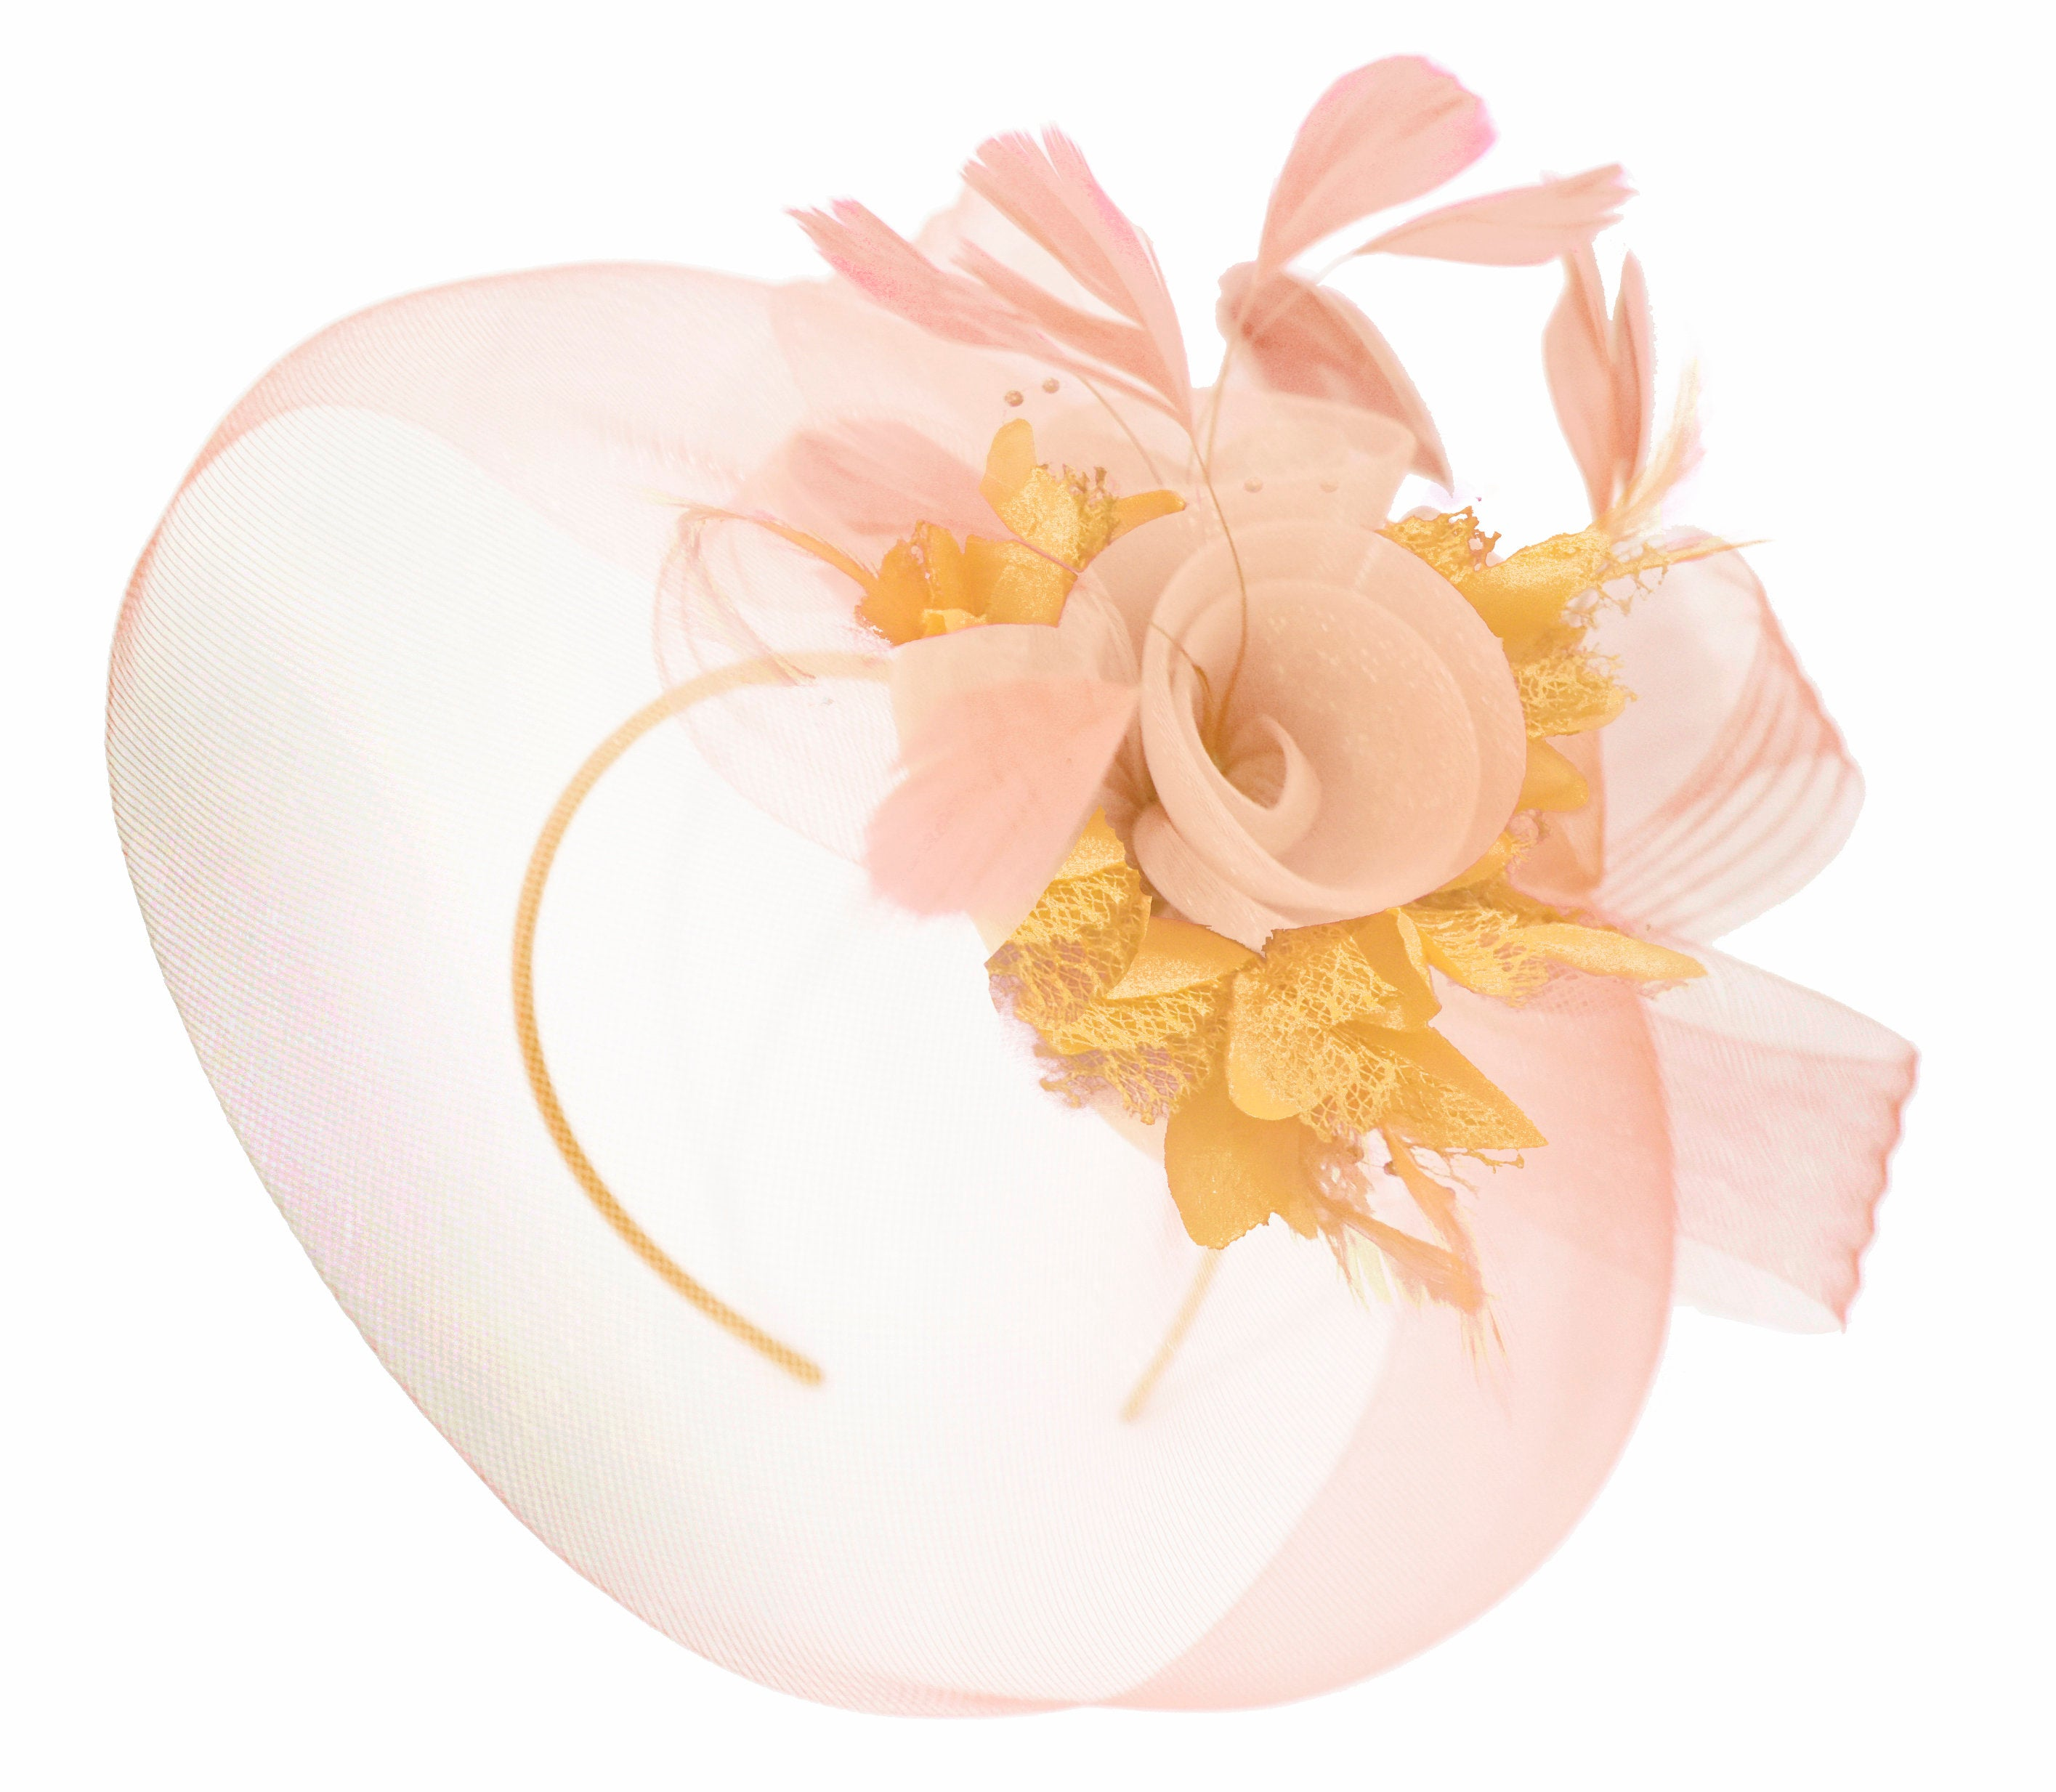 Caprilite Nude Pink Peach and Gold Fascinator Hat Veil Net Hair Clip Ascot Derby Races Wedding Headband Feather Flower